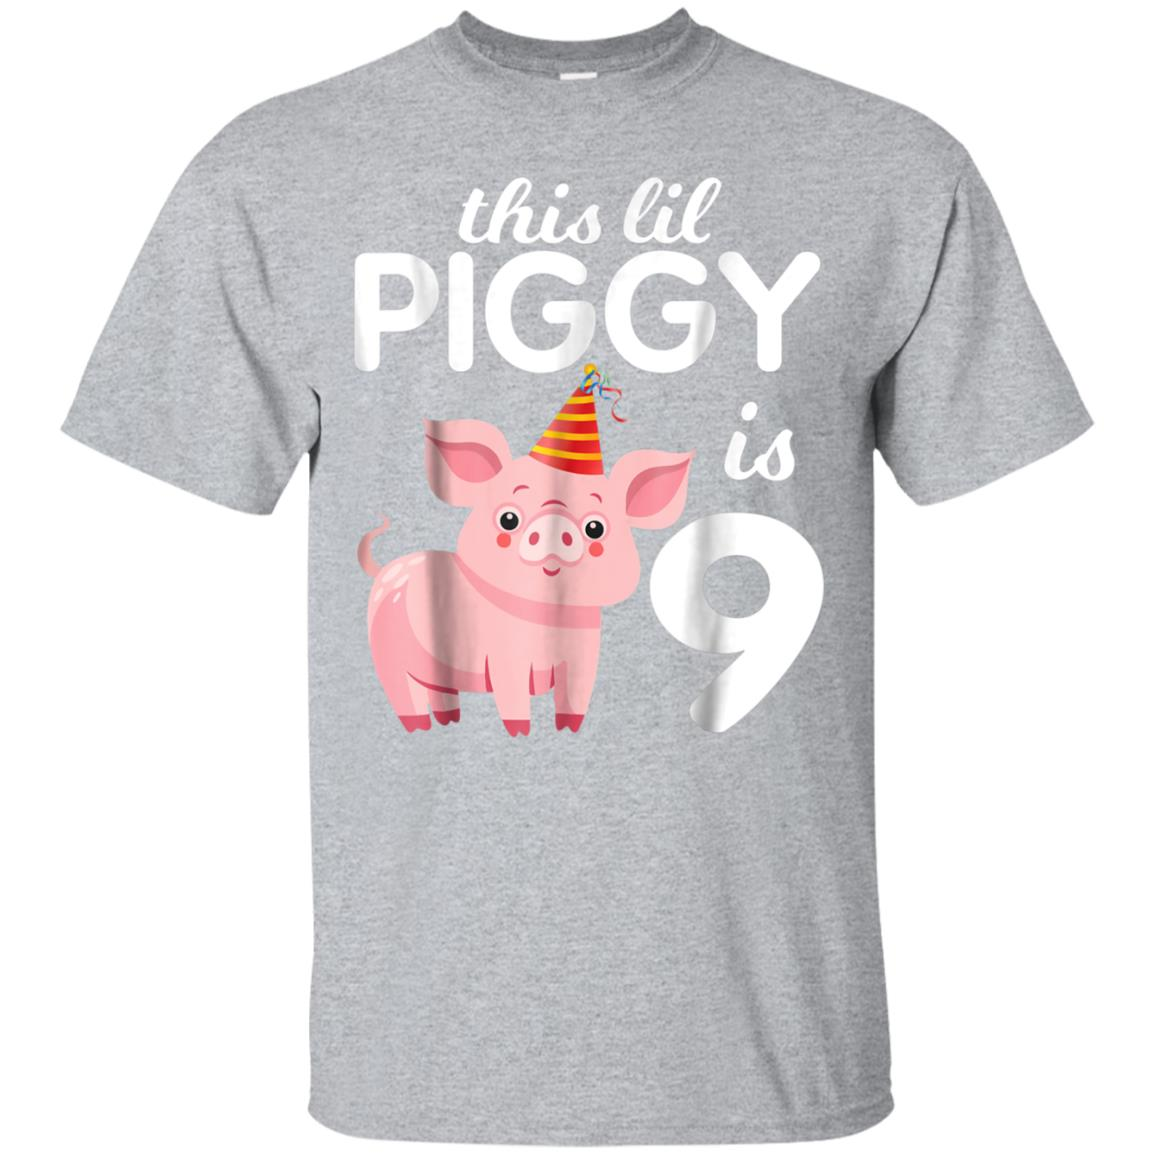 This Lil Piggy Is 9 Years Old Love Cute Fun Tshirt Children 99promocode